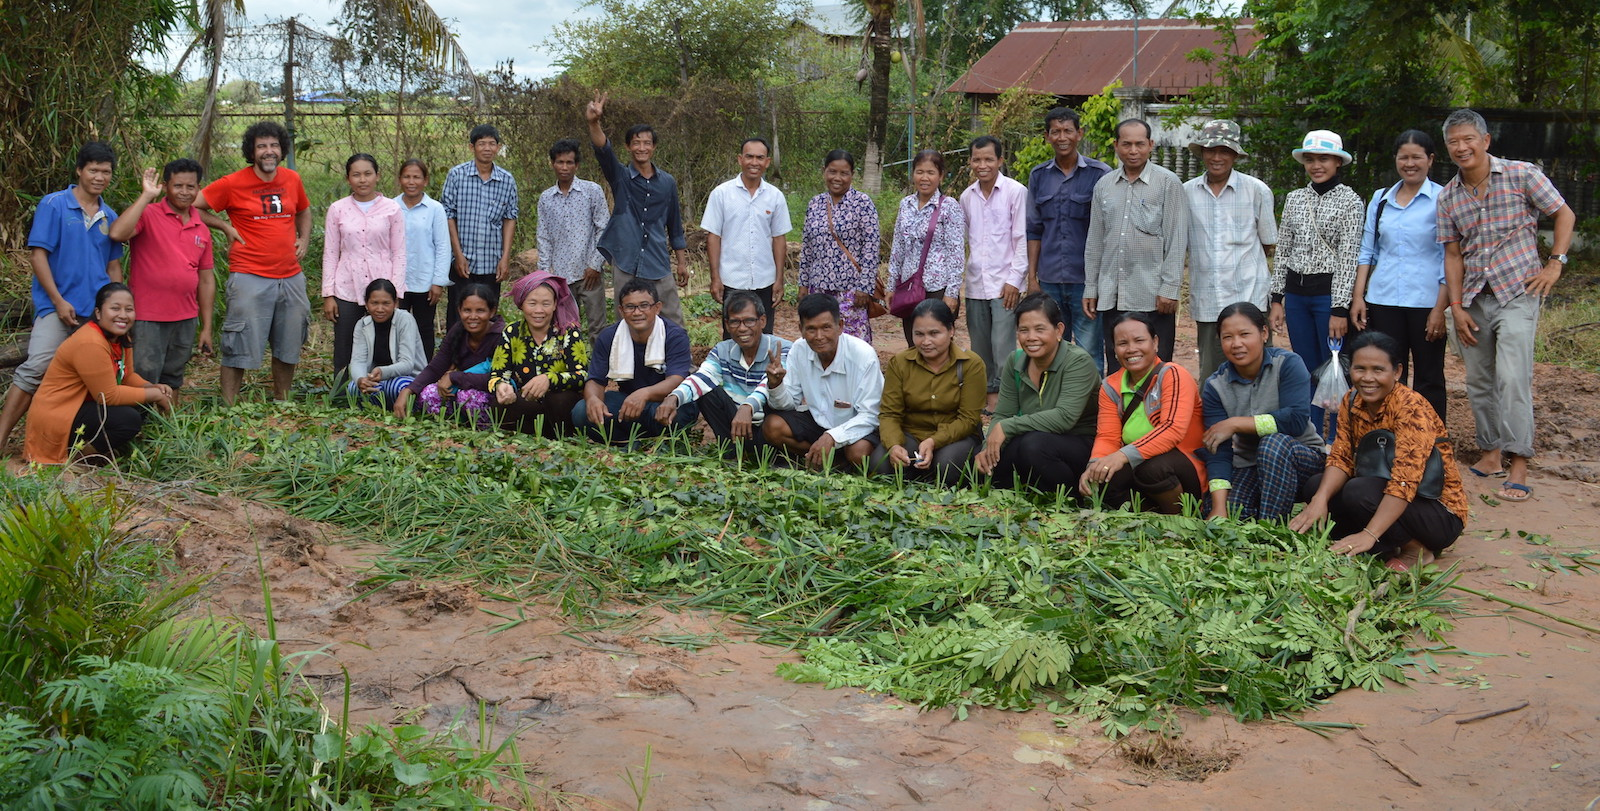 OCTOBER 2018: Trainees and Campaign workers at newly created victory garden